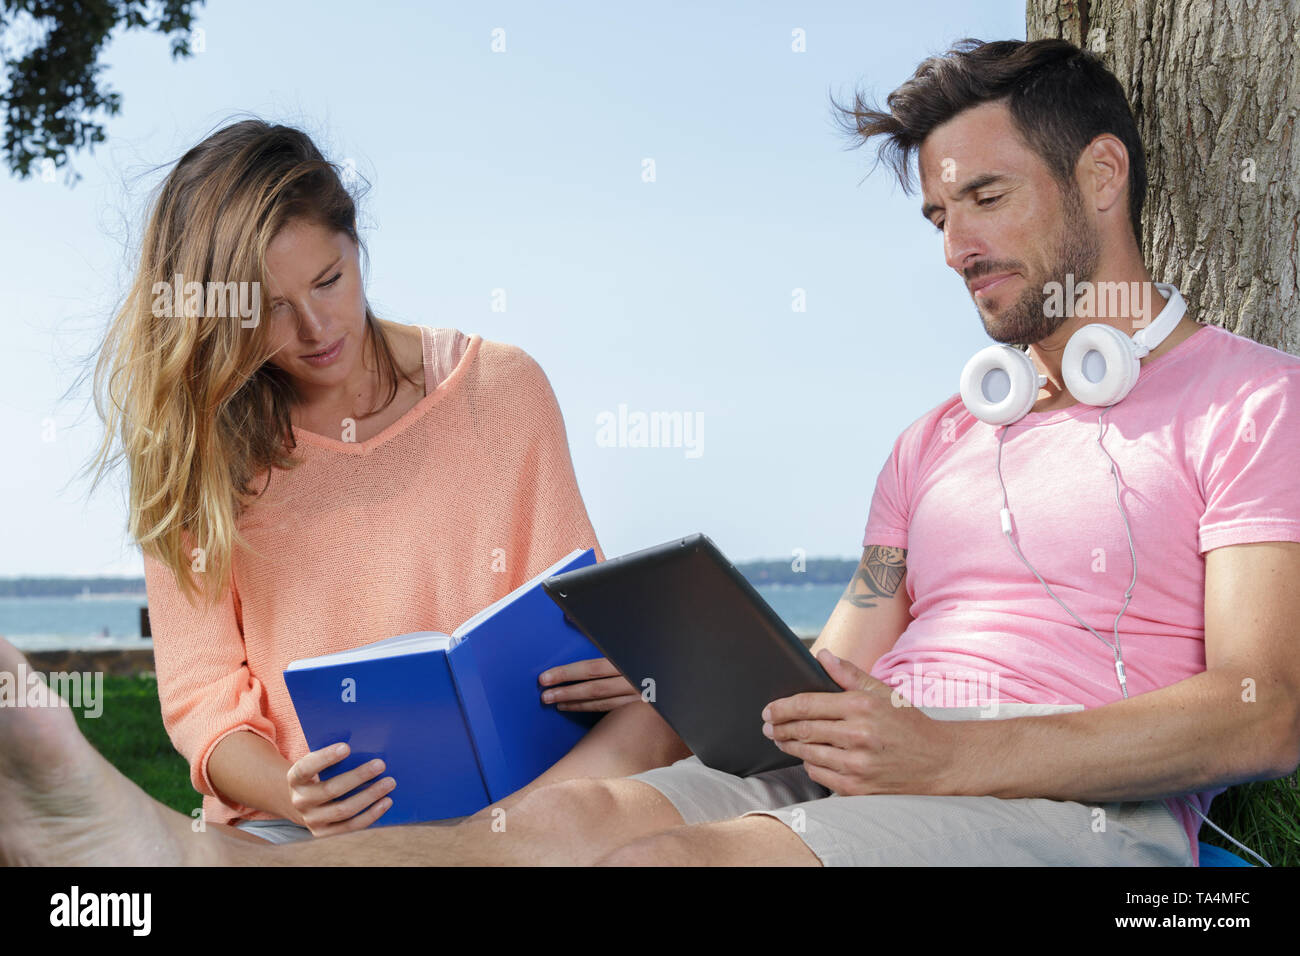 young couple relaxing at the beach - Stock Image